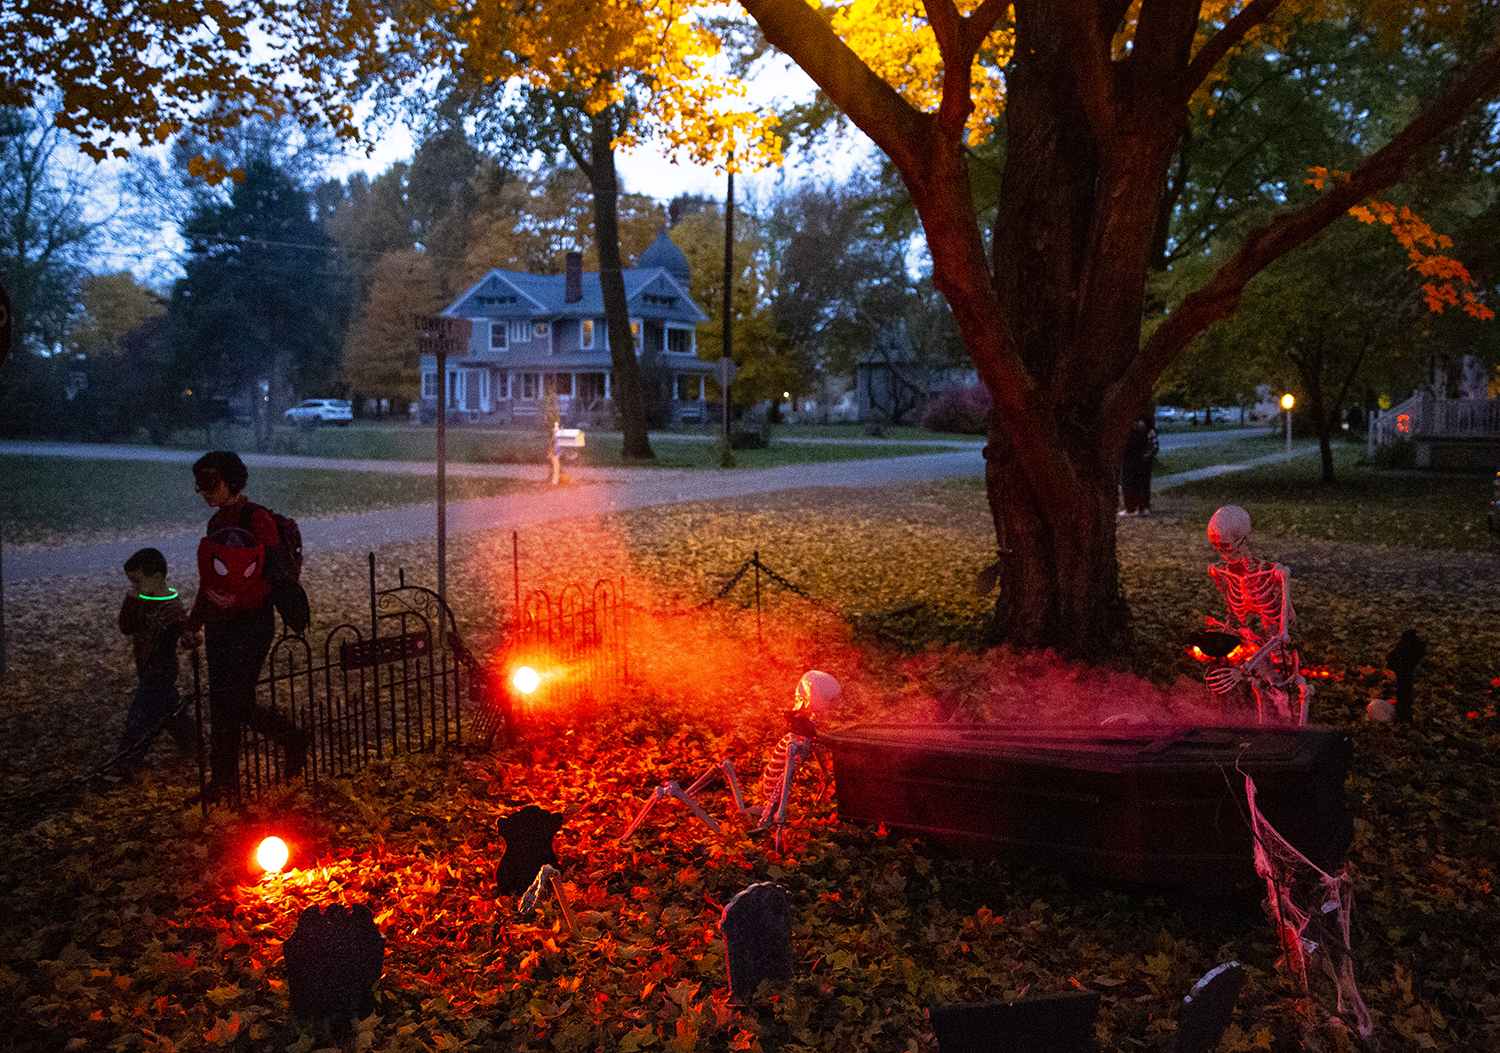 A haunted graveyard in the yard of Ryan and Kara McCaffrey greets trick or treaters Wednesday, Oct. 31, 2018 in Williamsville, Ill. [Rich Saal/The State Journal-Register]